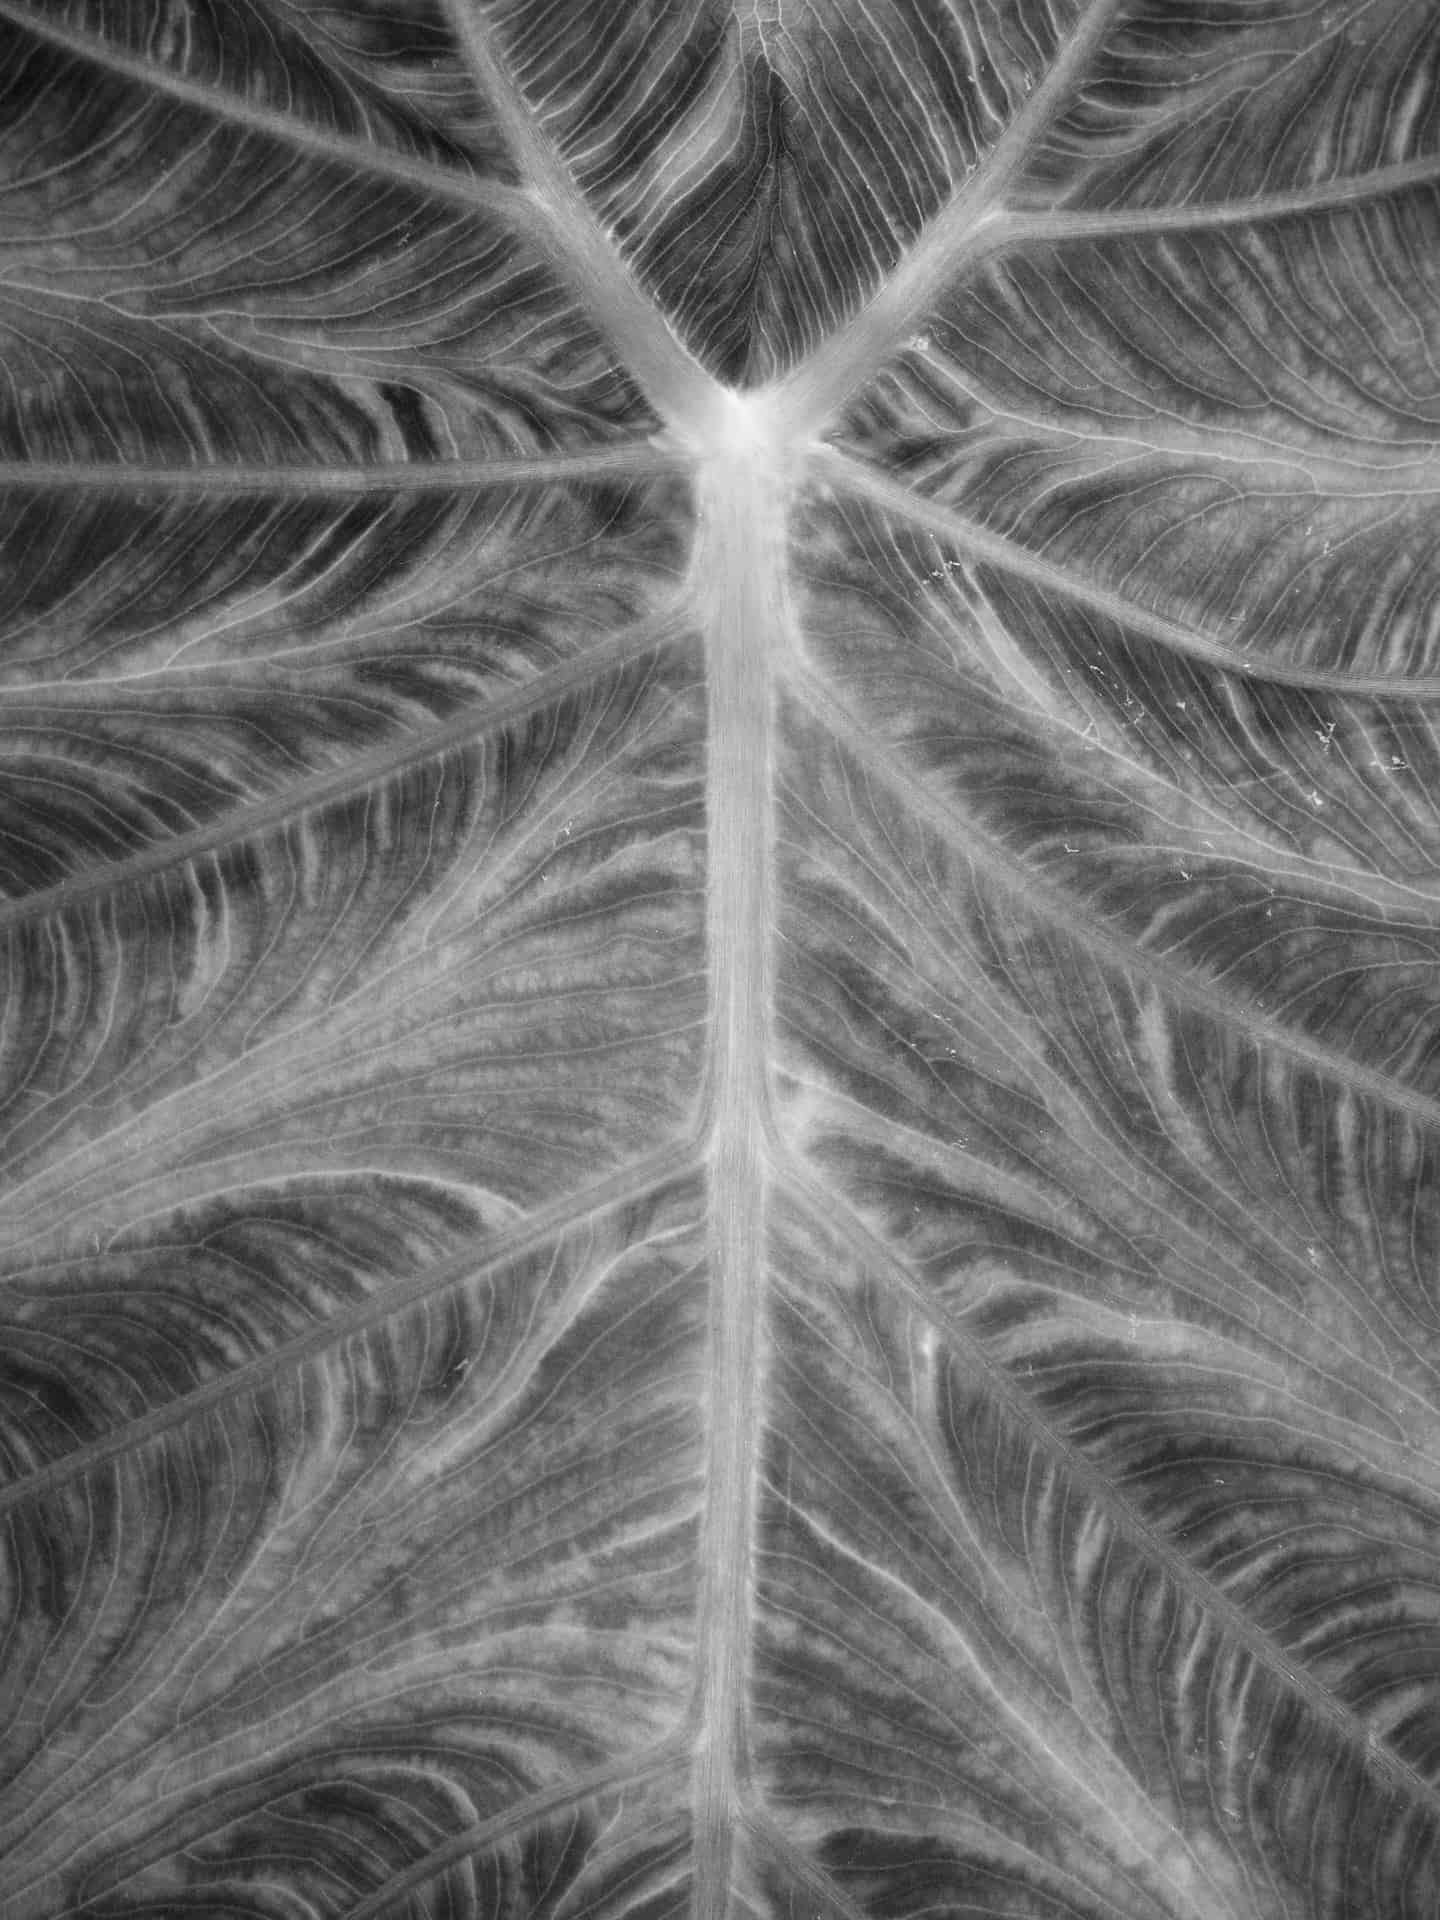 Close up of the veins in elephant ears.